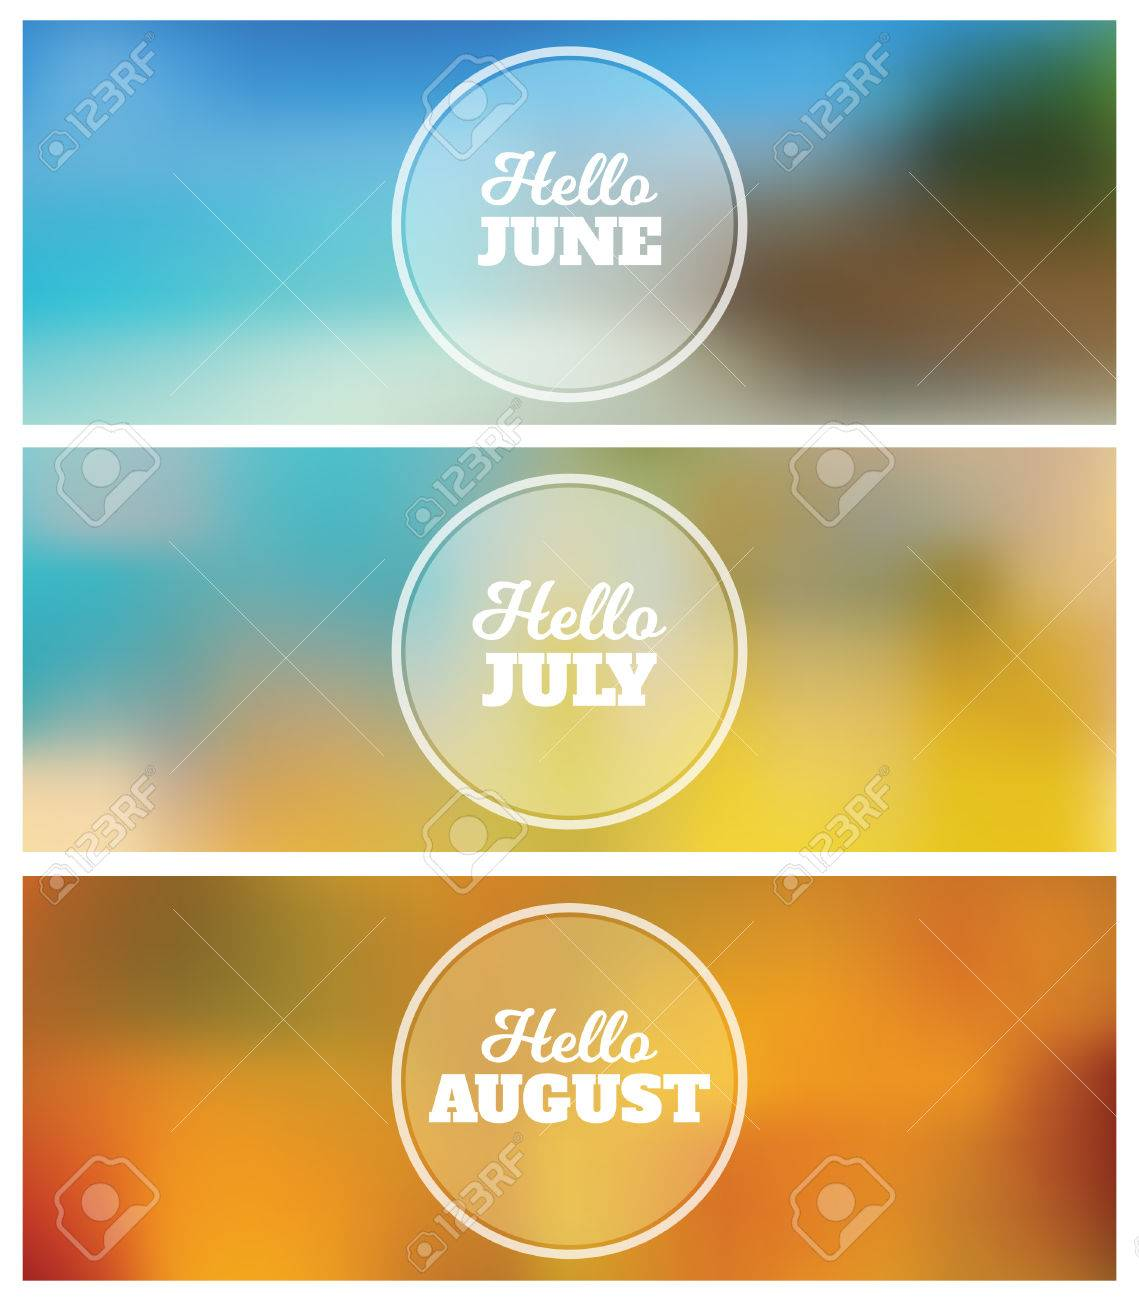 Hello June   July   August   Summer Timeline Cover Graphic Design  Background Set Stock Vector